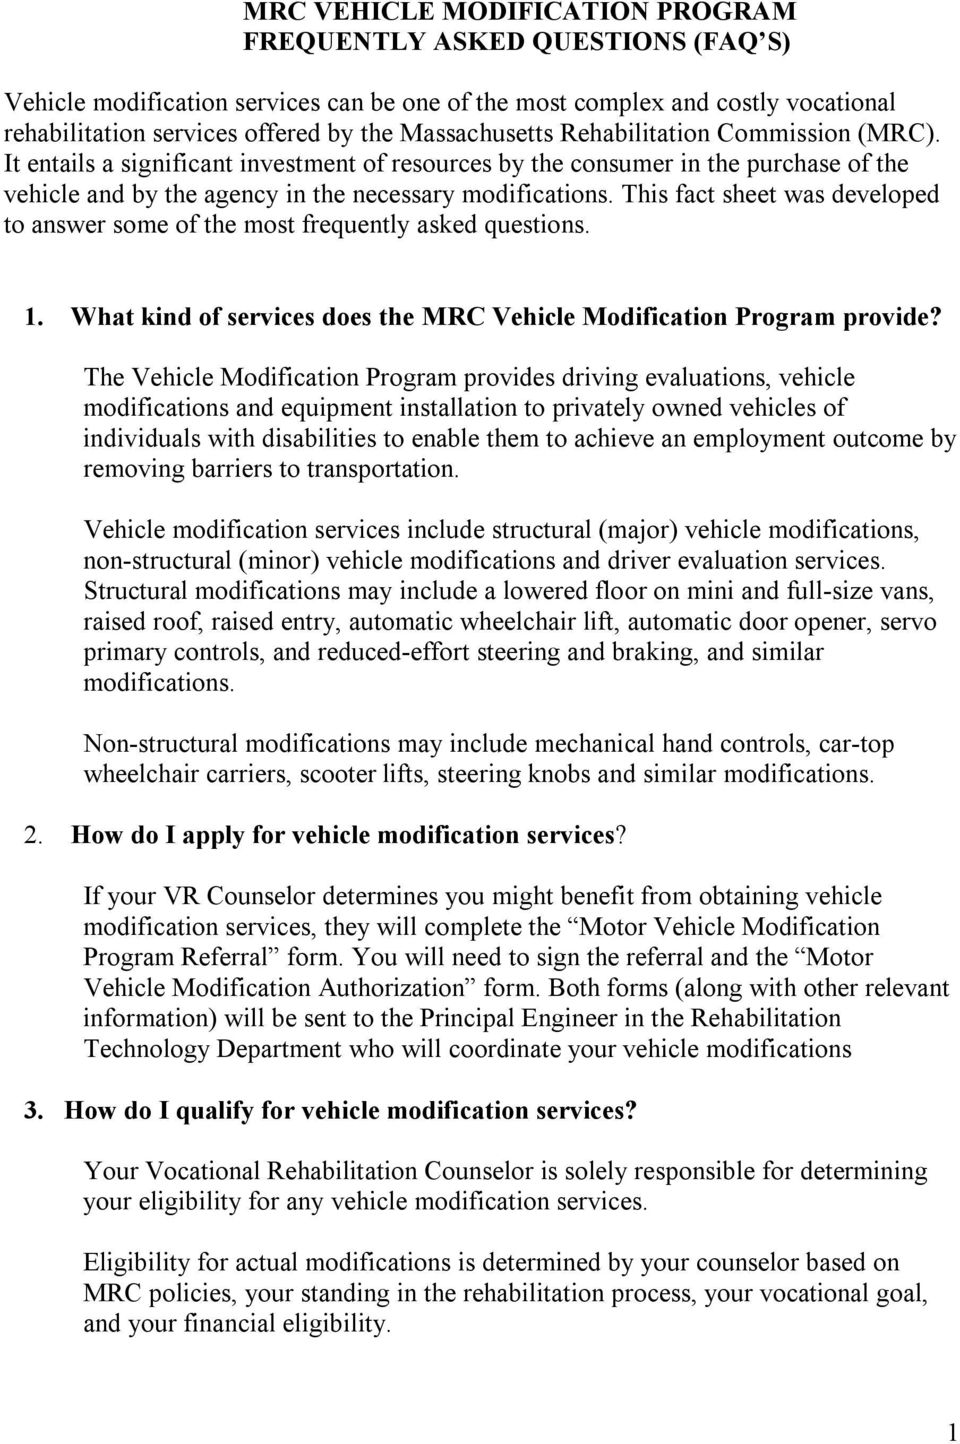 This fact sheet was developed to answer some of the most frequently asked questions. 1. What kind of services does the MRC Vehicle Modification Program provide?